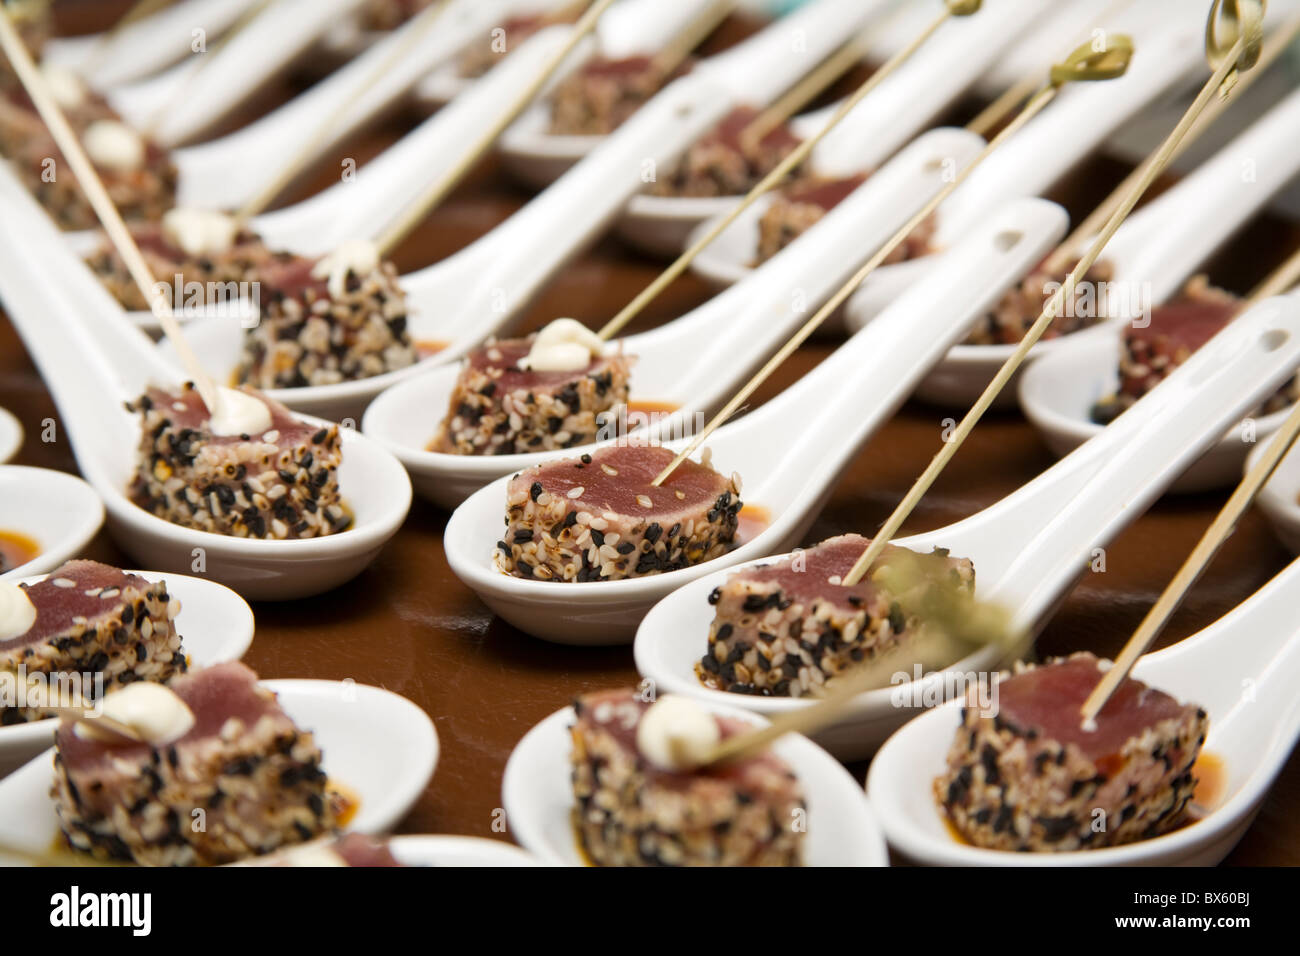 Tuna Canapés about to be served - Stock Image